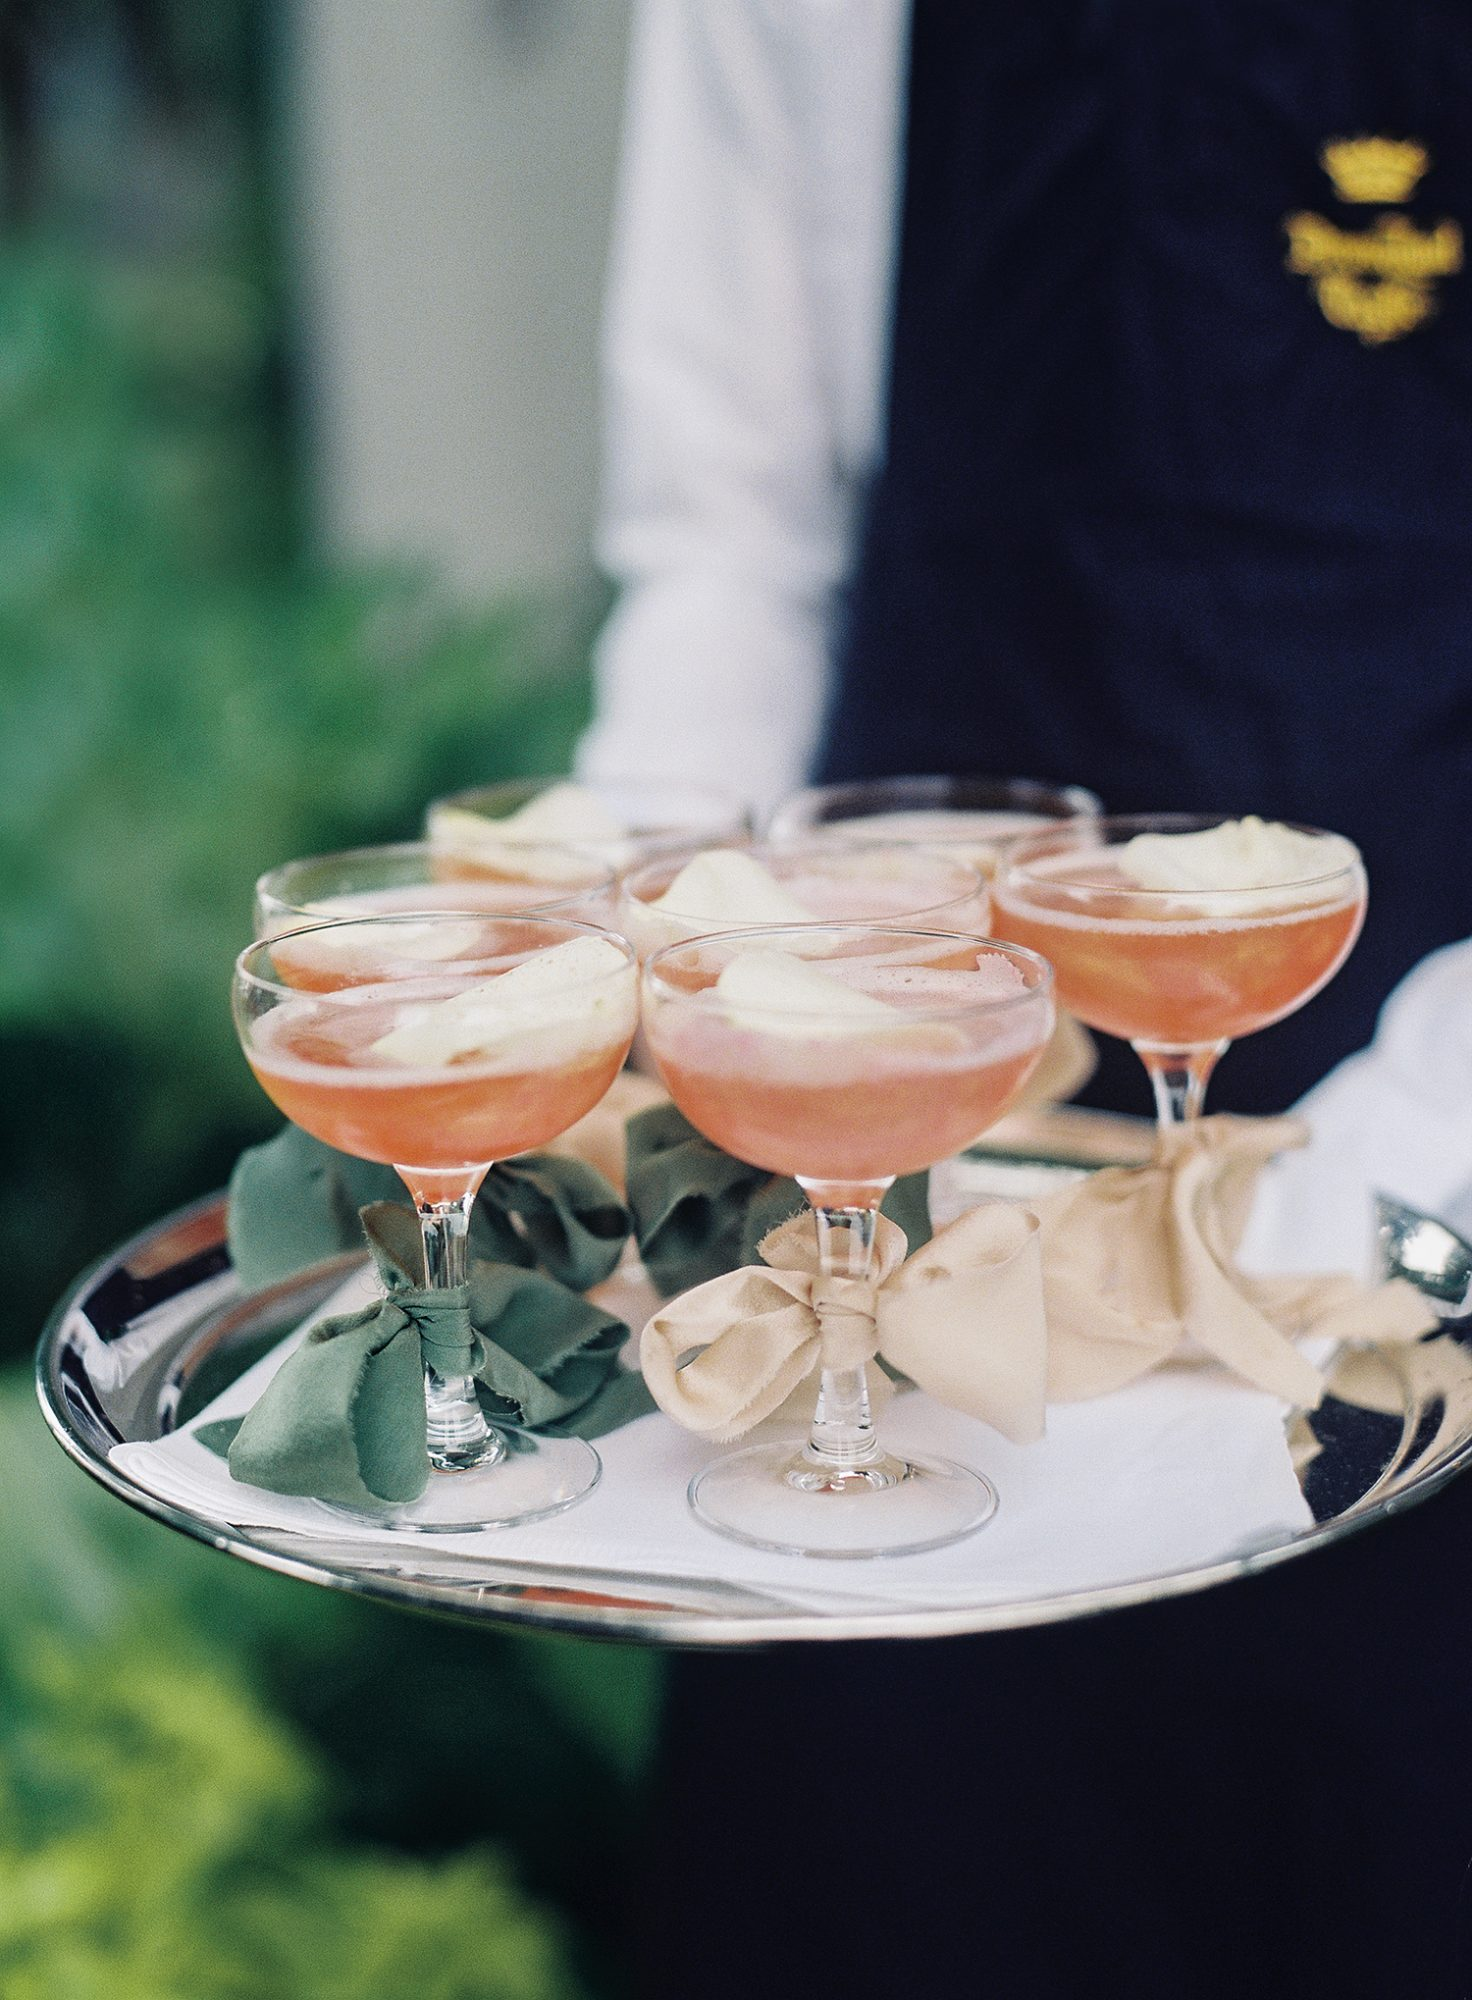 ribbon bows tied around glasses of rose on tray